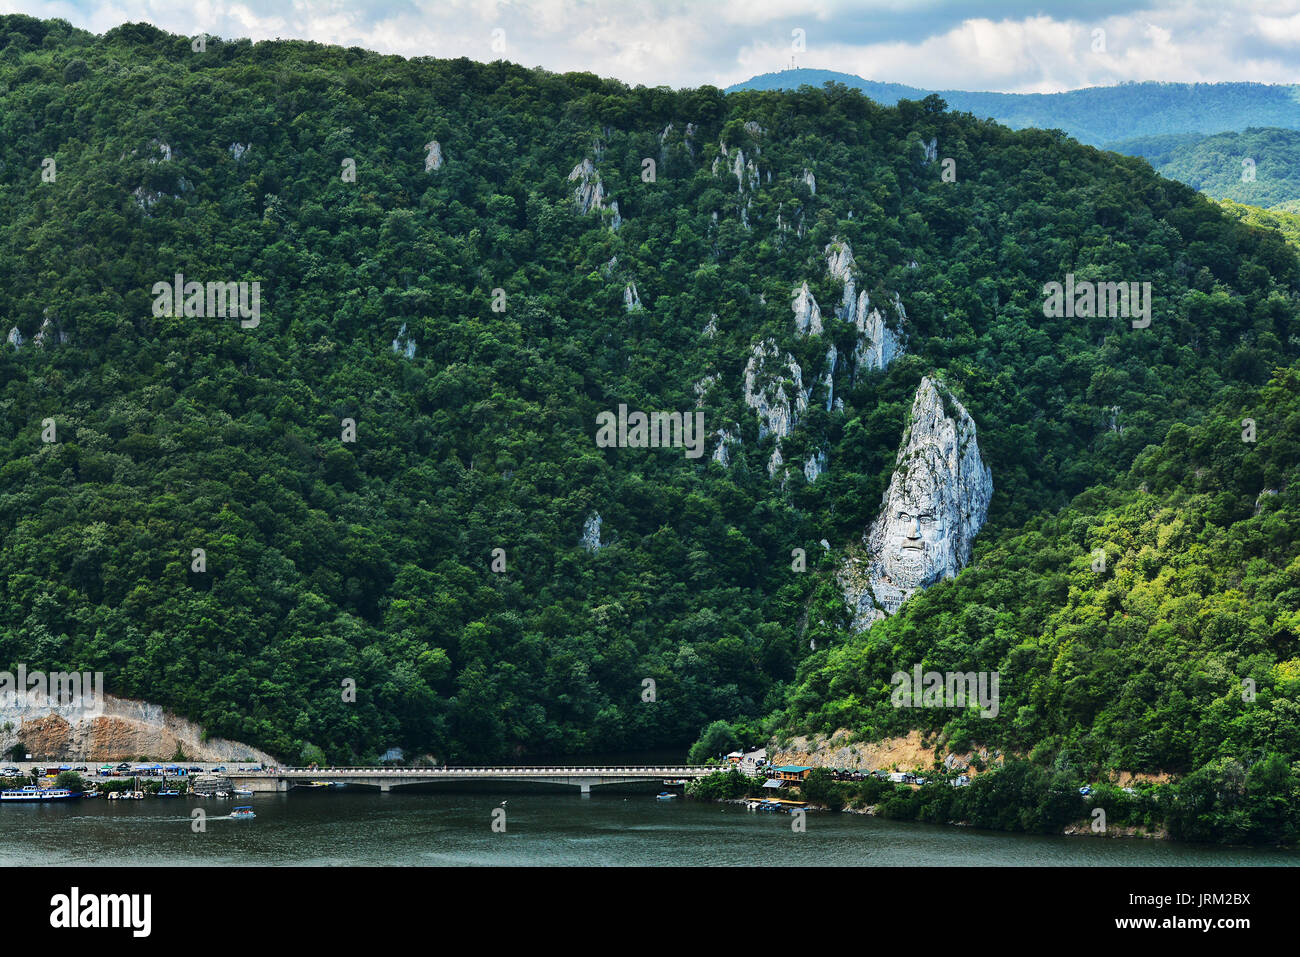 danube between mountains and - photo #22